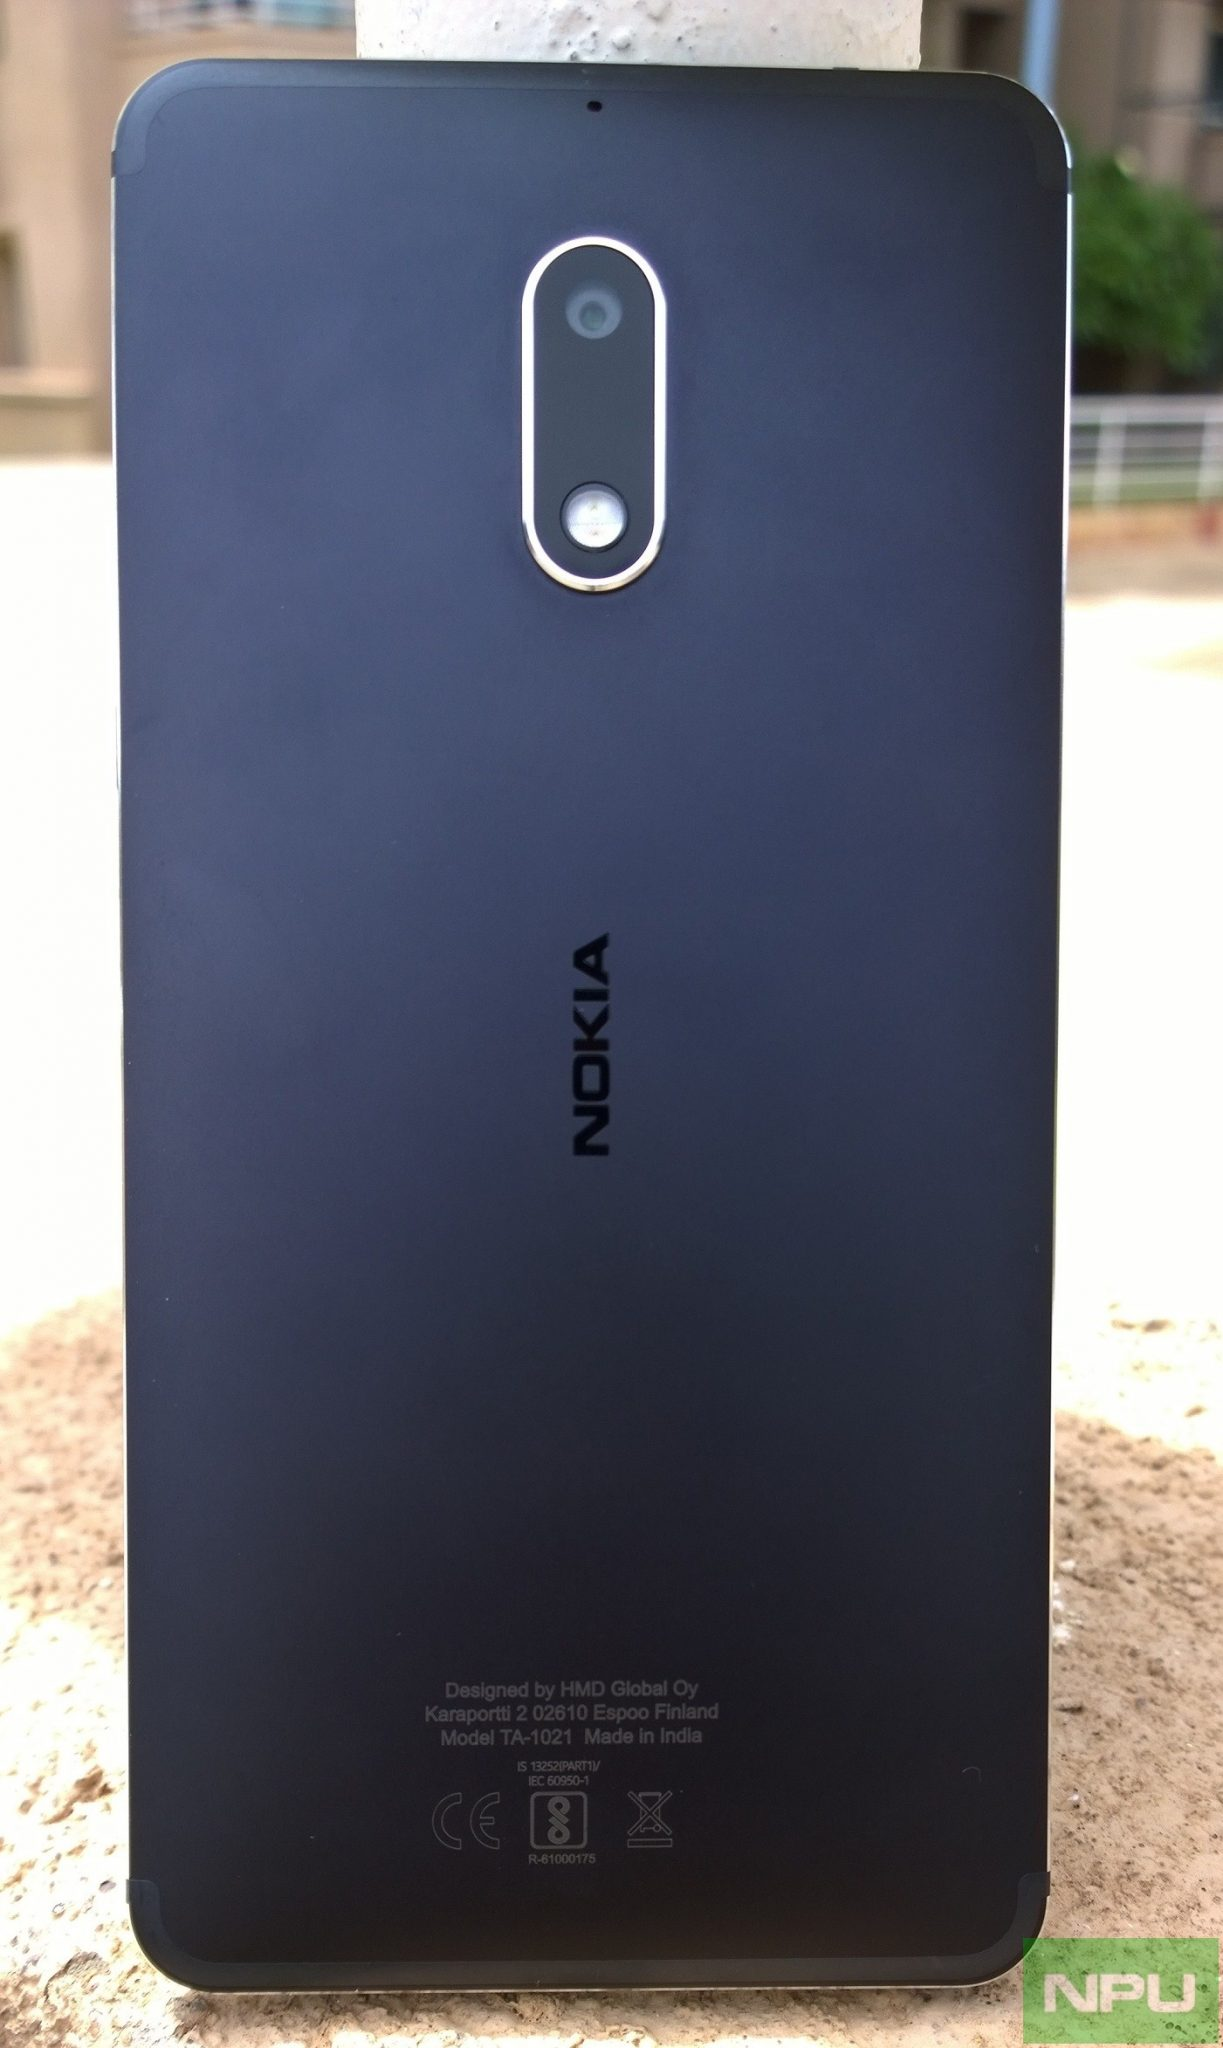 Nokia 6 Arte Black Video Deal Alert Nokia 6 With 3gb Ram Is Now Available For 13499 In